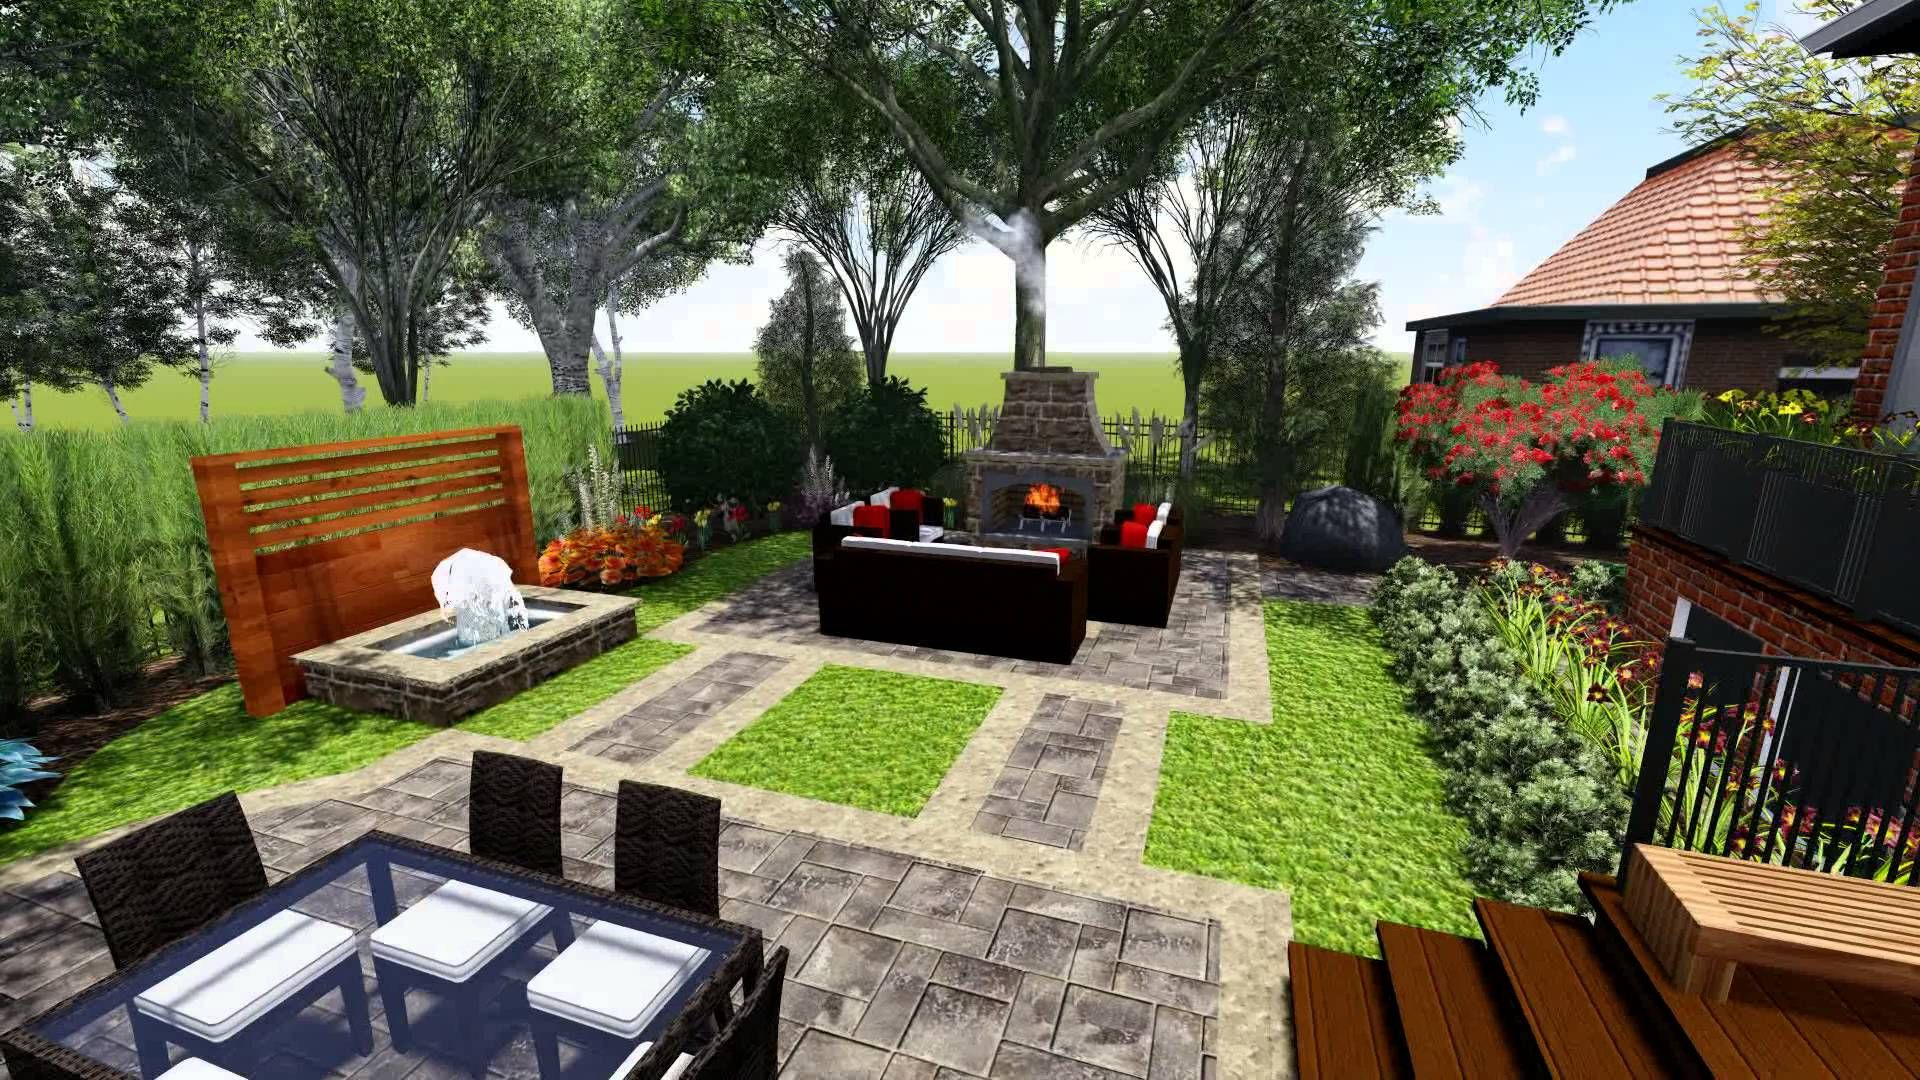 Landscaping Design Ideas For Backyard Concept Fair Proland Landscape Design Concept Small Backyard  Backyard . Decorating Inspiration